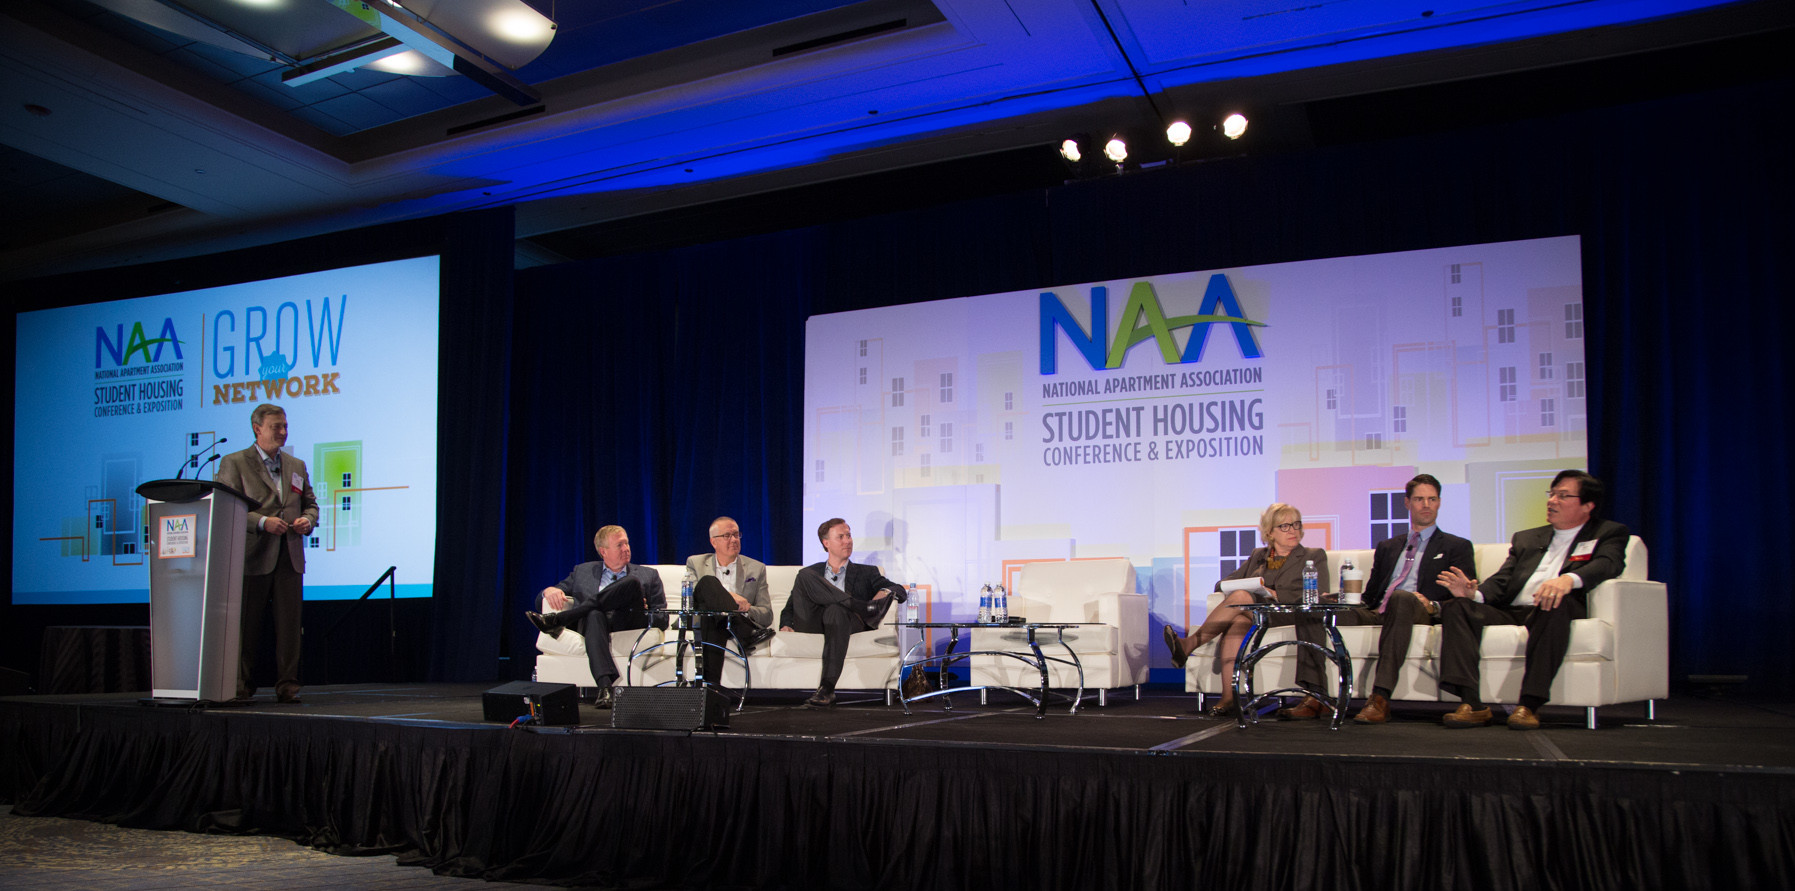 Images from the 2016 National Apartment Association (NAA) Student Housing Conference at Hyatt Regency Chicago in Chicago, IL on Wednesday, February 17, 2016. Photo by Tracy Boulian